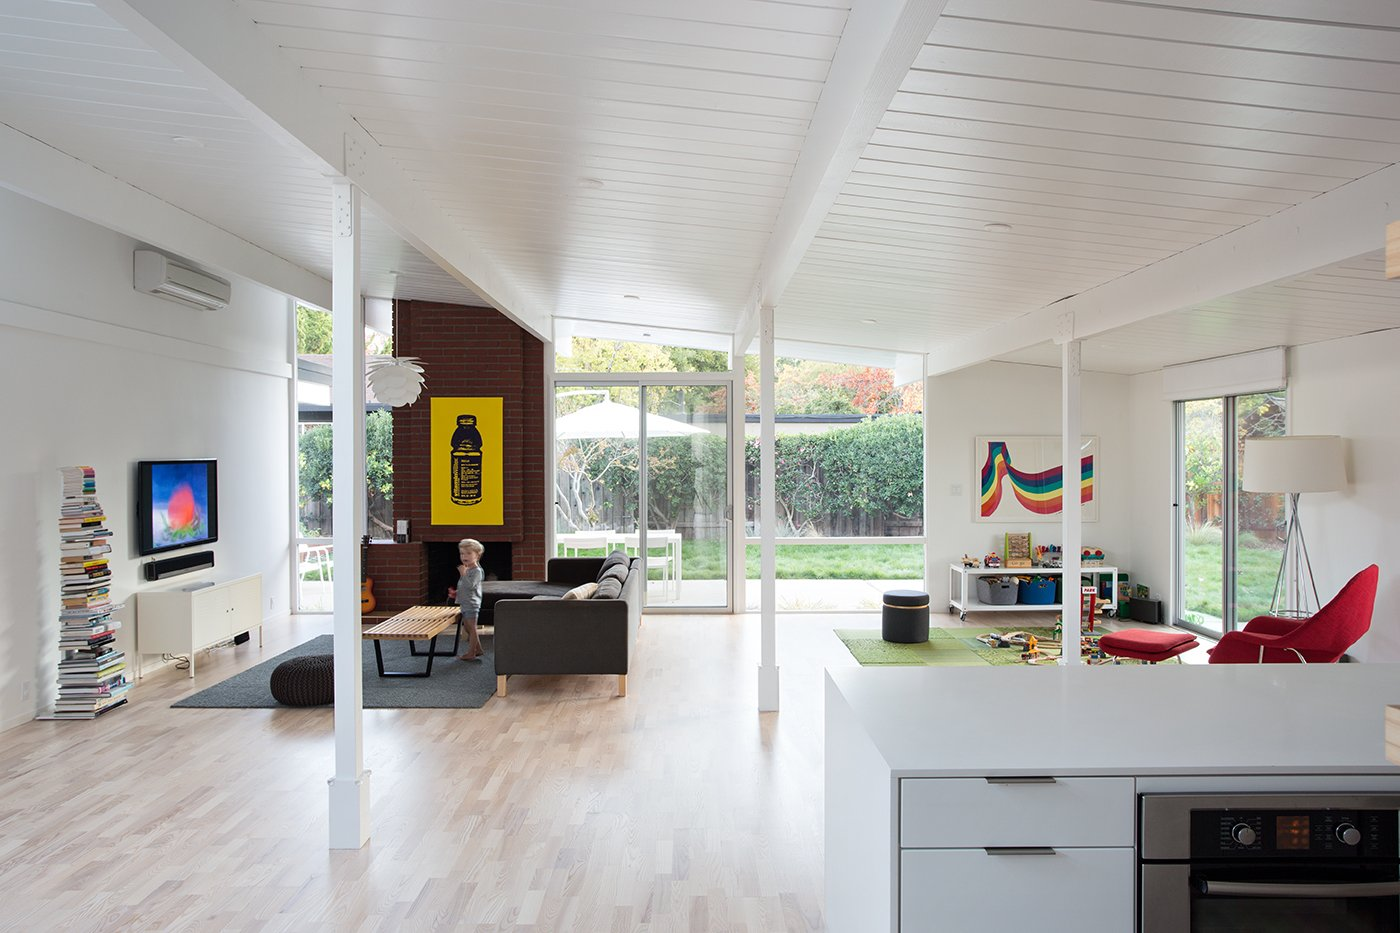 "The living spaces of house, built in 1972 or 1973, were originally divided into three—a kitchen, living and dining area, and an atrium (previous owners had covered the atrium with a roof). ""The new owners wanted the interior space to flow as one, so we removed the glass doors and solid walls separating the enclosed atrium from the kitchen and living room,"" principal John Klopf says. ""Some structural posts needed to remain to hold up the roof, but overall the space was opened up almost completely. The floor was leveled, and the plan freed up."" The rainbow print is a 1960s Herman Miller trade poster, and the Vitamin Water print by a New York artist. A Sapien book tower from Design Within Reach sits next to the TV. The sofa is IKEA."